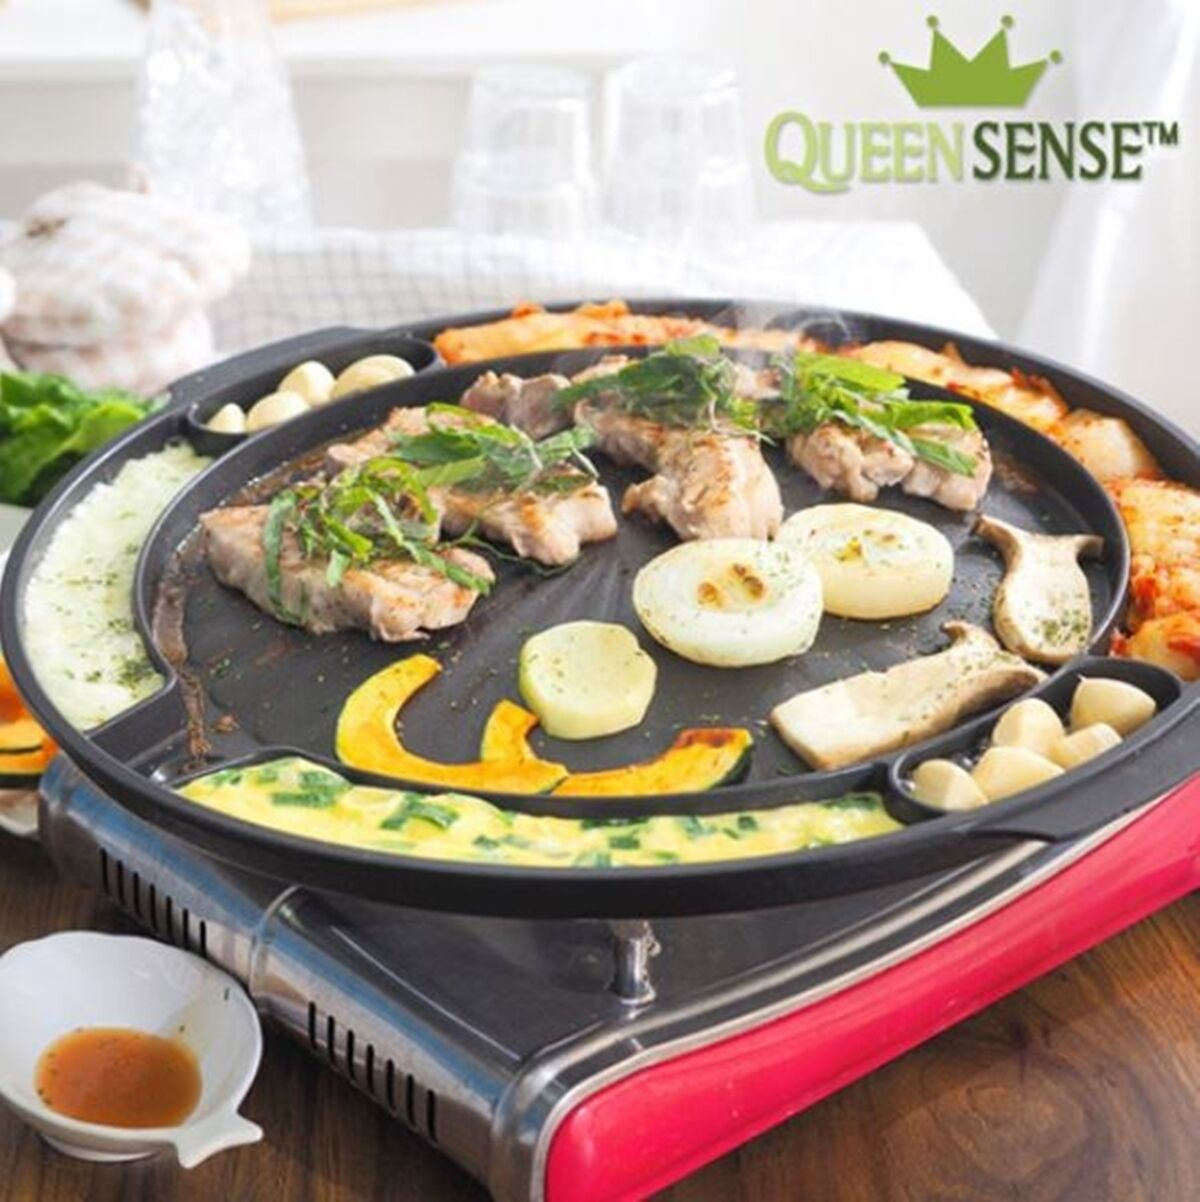 BBQ Multi Grill Pan Egg Crust Cheese Pork Camping Stove Top Home Garden Barbecue